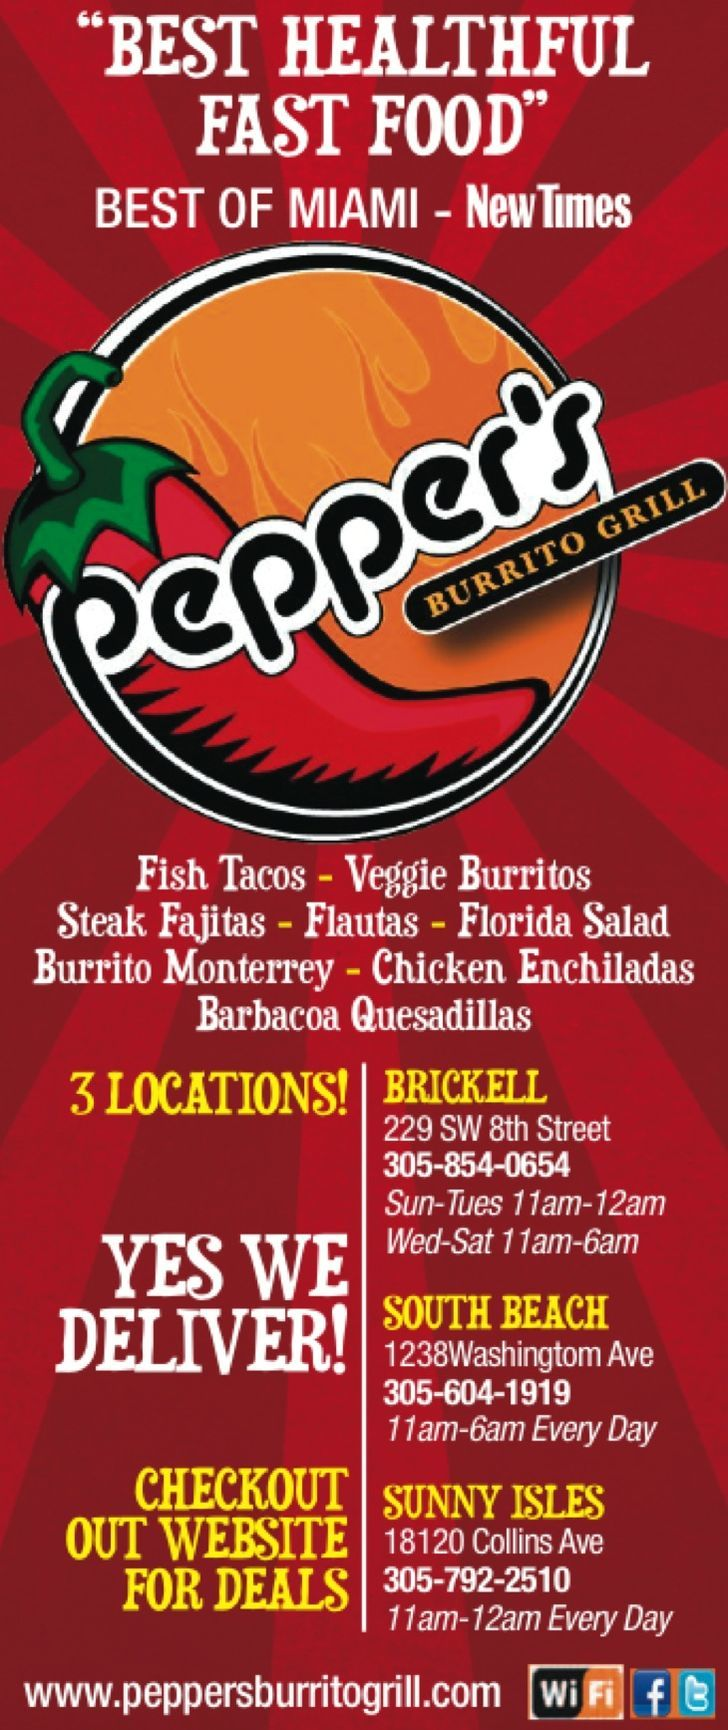 Pepper's Burrito Grill